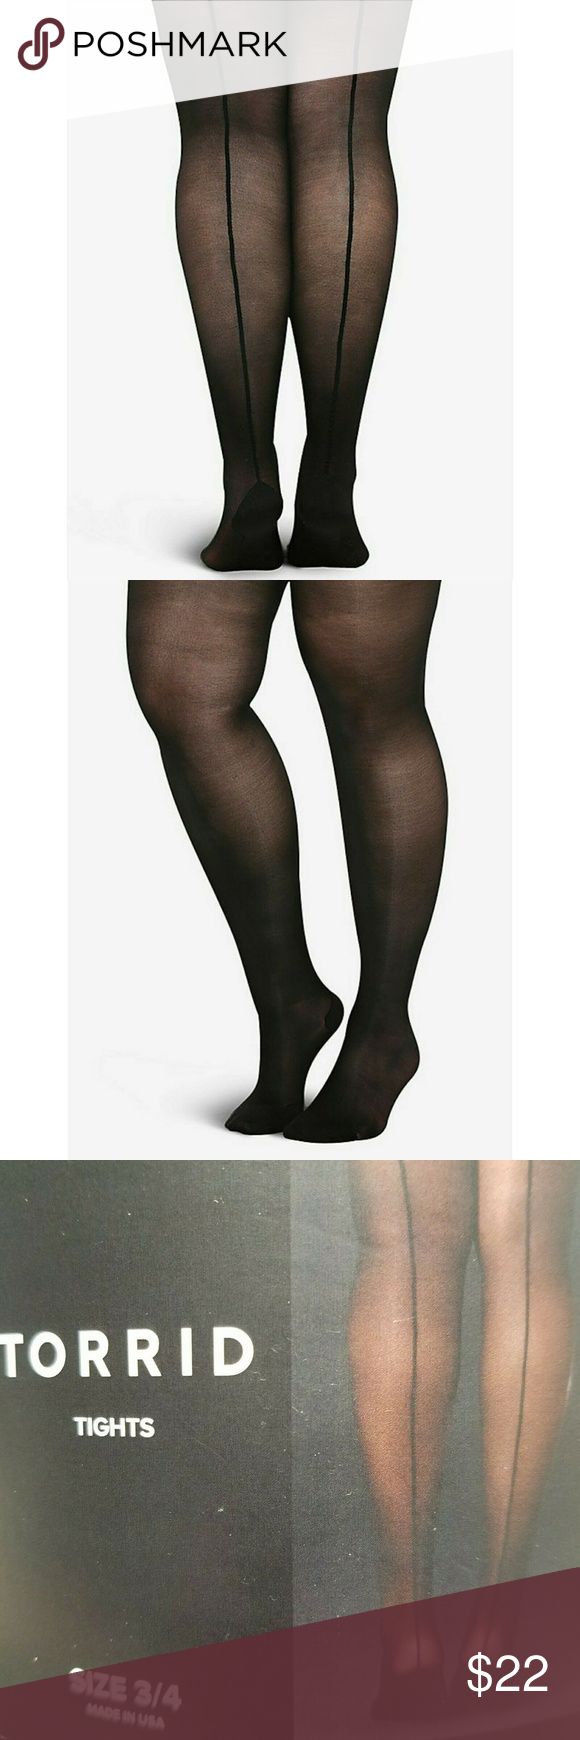 Torrid Back Seam Tights Pantyhose 3x 4x Torrid Women S Black Cuban Tights Pantyhose Burlesque Plus Size 3x 4x There S A Thin Line Betw Pantyhose Torrid Tights